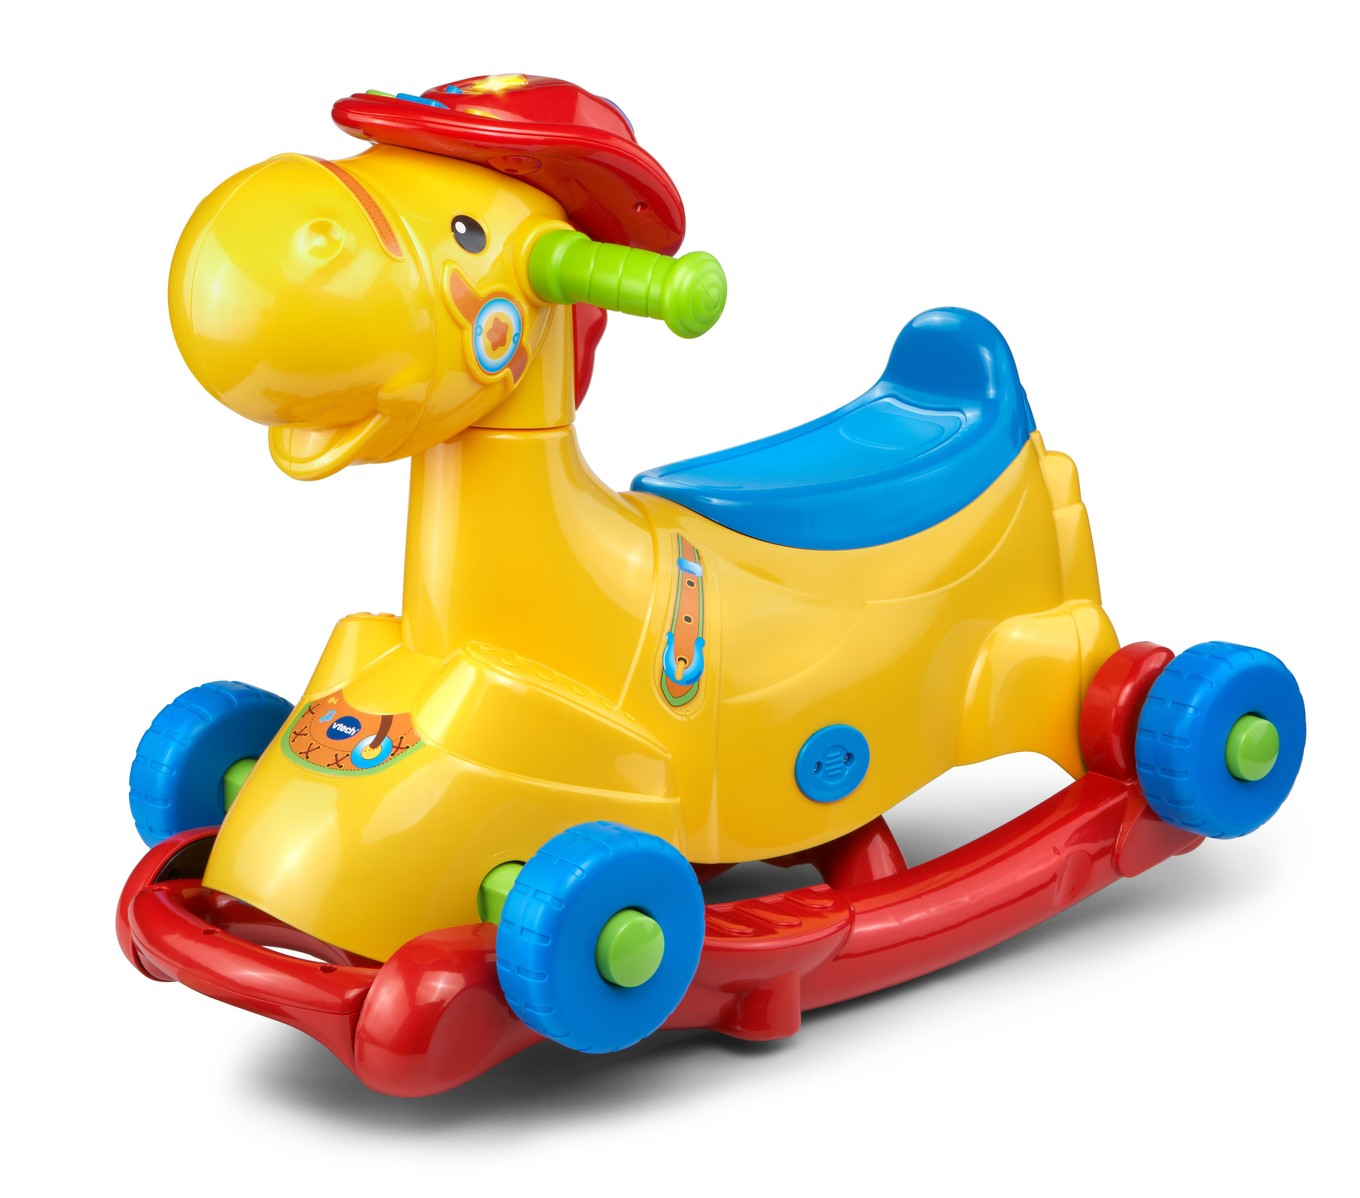 VTech 2-in-1 Smart Ride-on Rocker